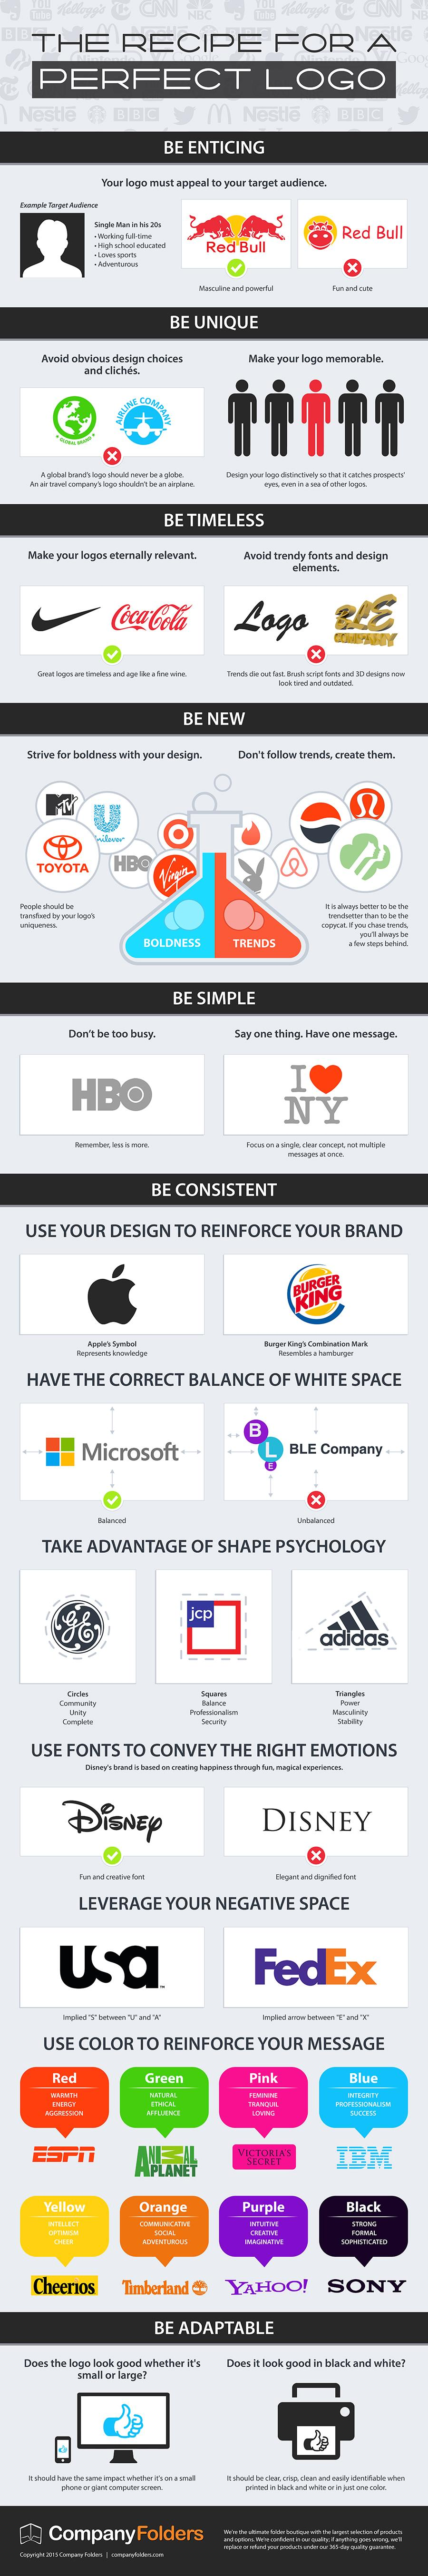 perfect-tips-and-tricks-for-logo-design